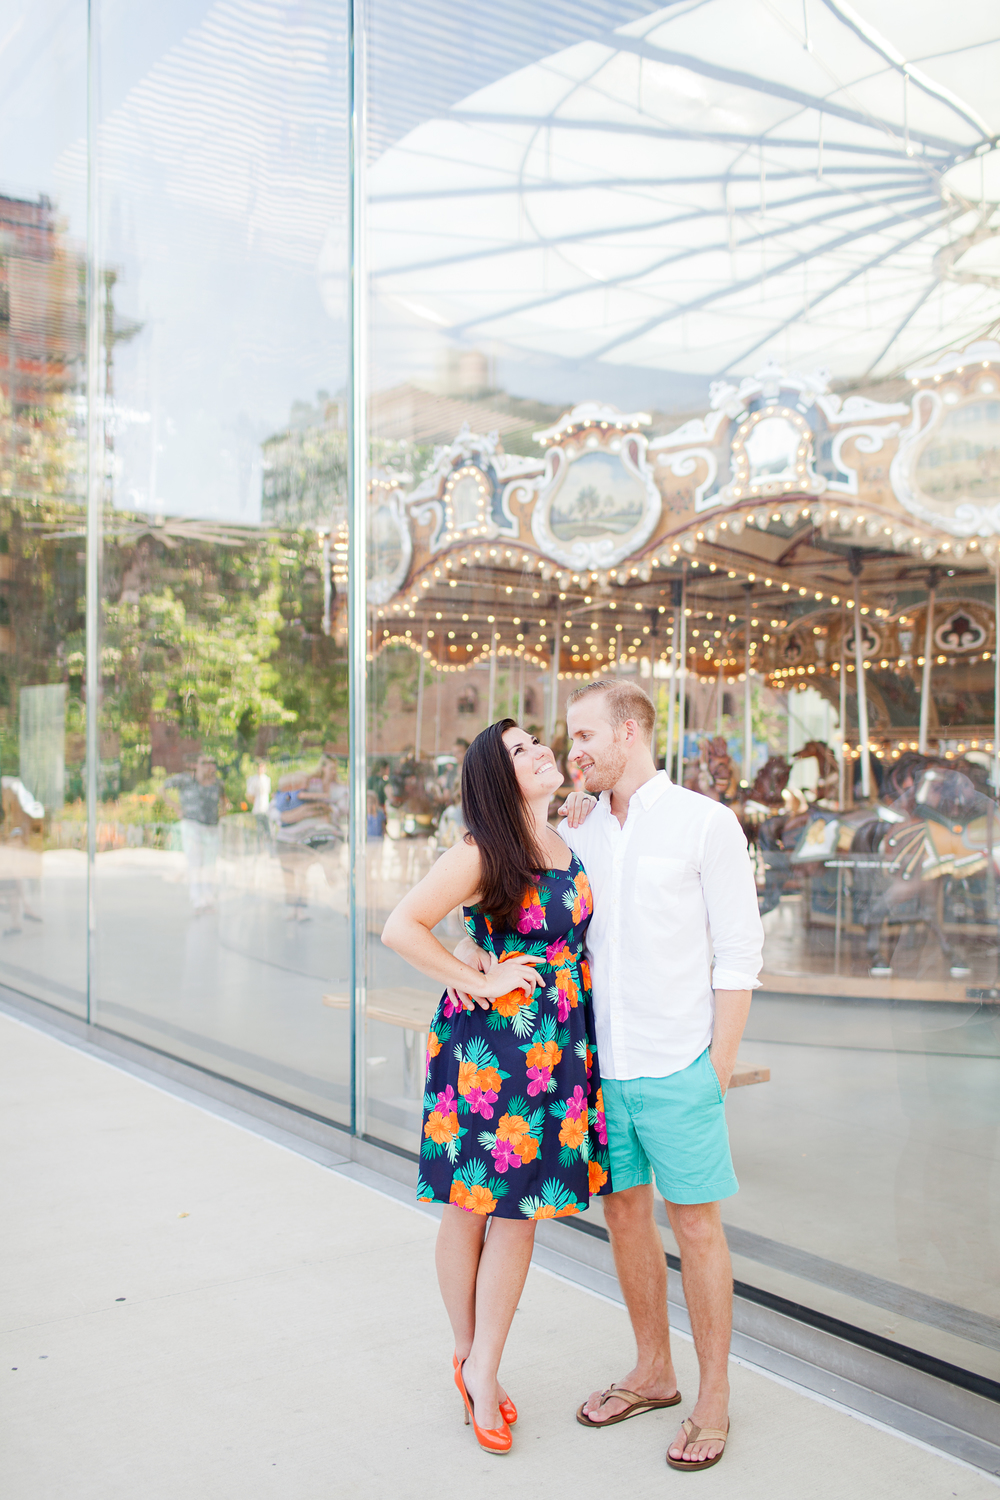 Melissa Kruse Photography - Sarah + Geoff DUMBO Brooklyn Bridge Park Jane's Carousel Engagement Photos-40.jpg